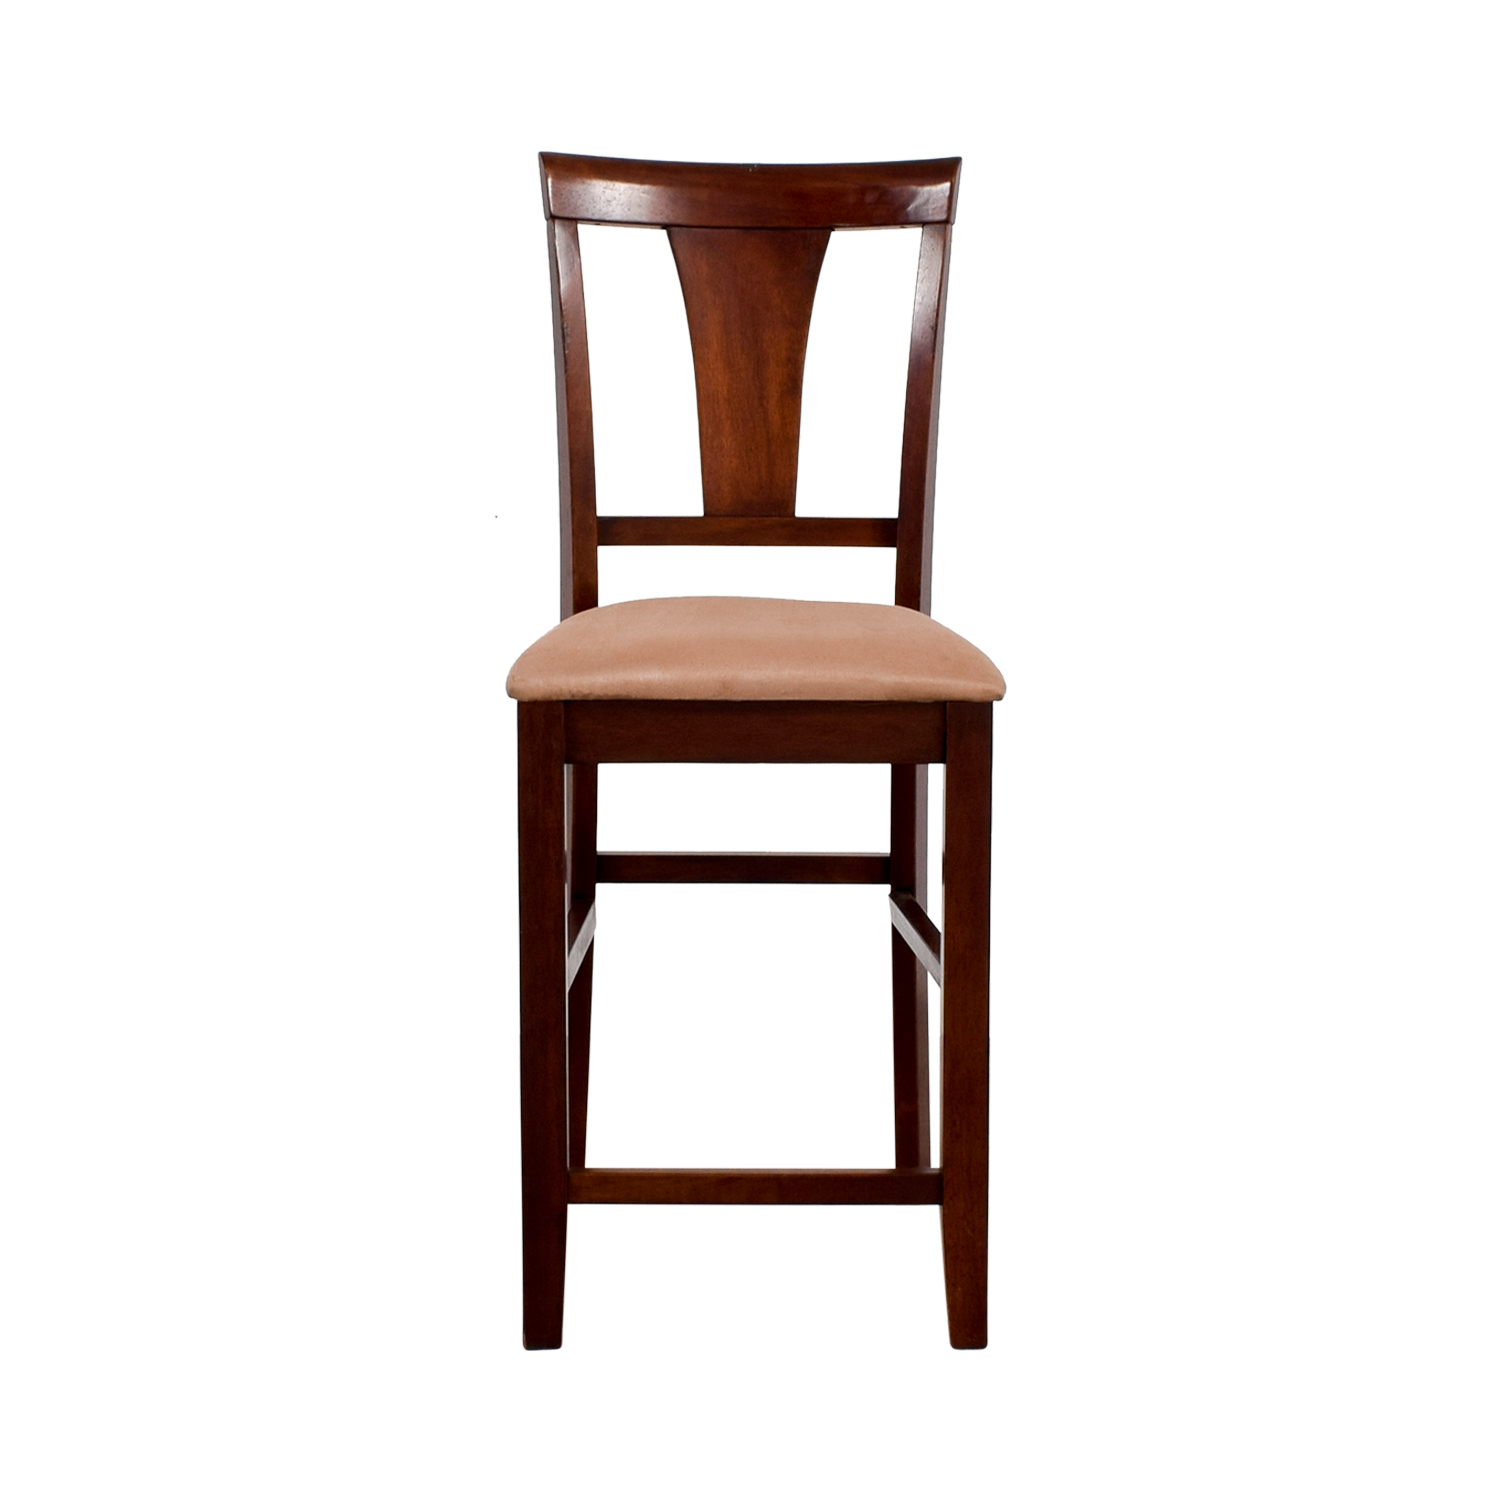 Light Cherry Wood Counter Height Chair With Padded Seat Dining Chairs ...